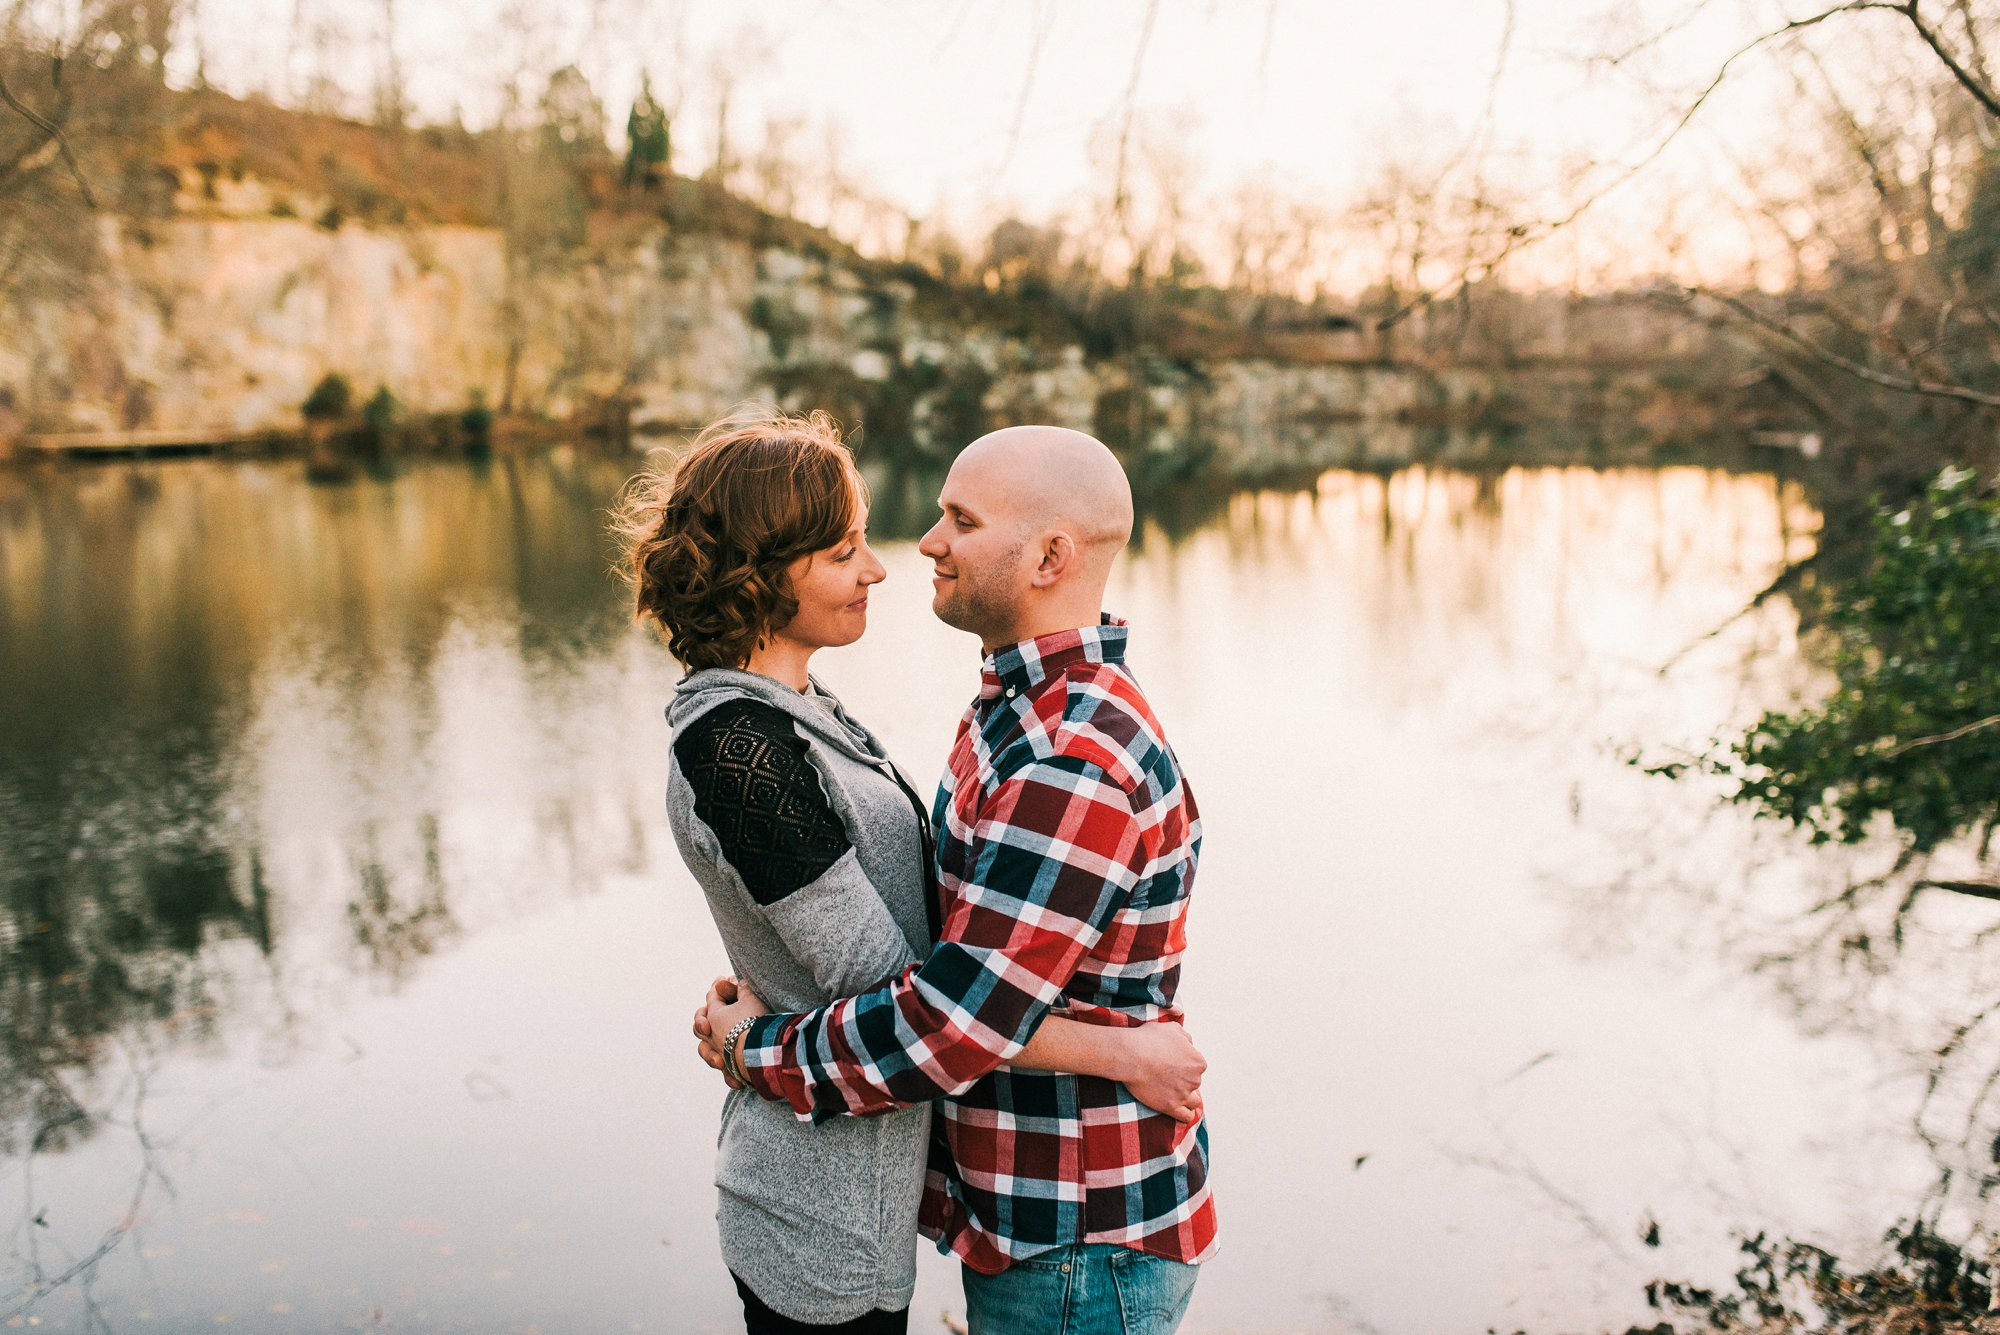 engagement-photography-88-love-stories-15.jpg